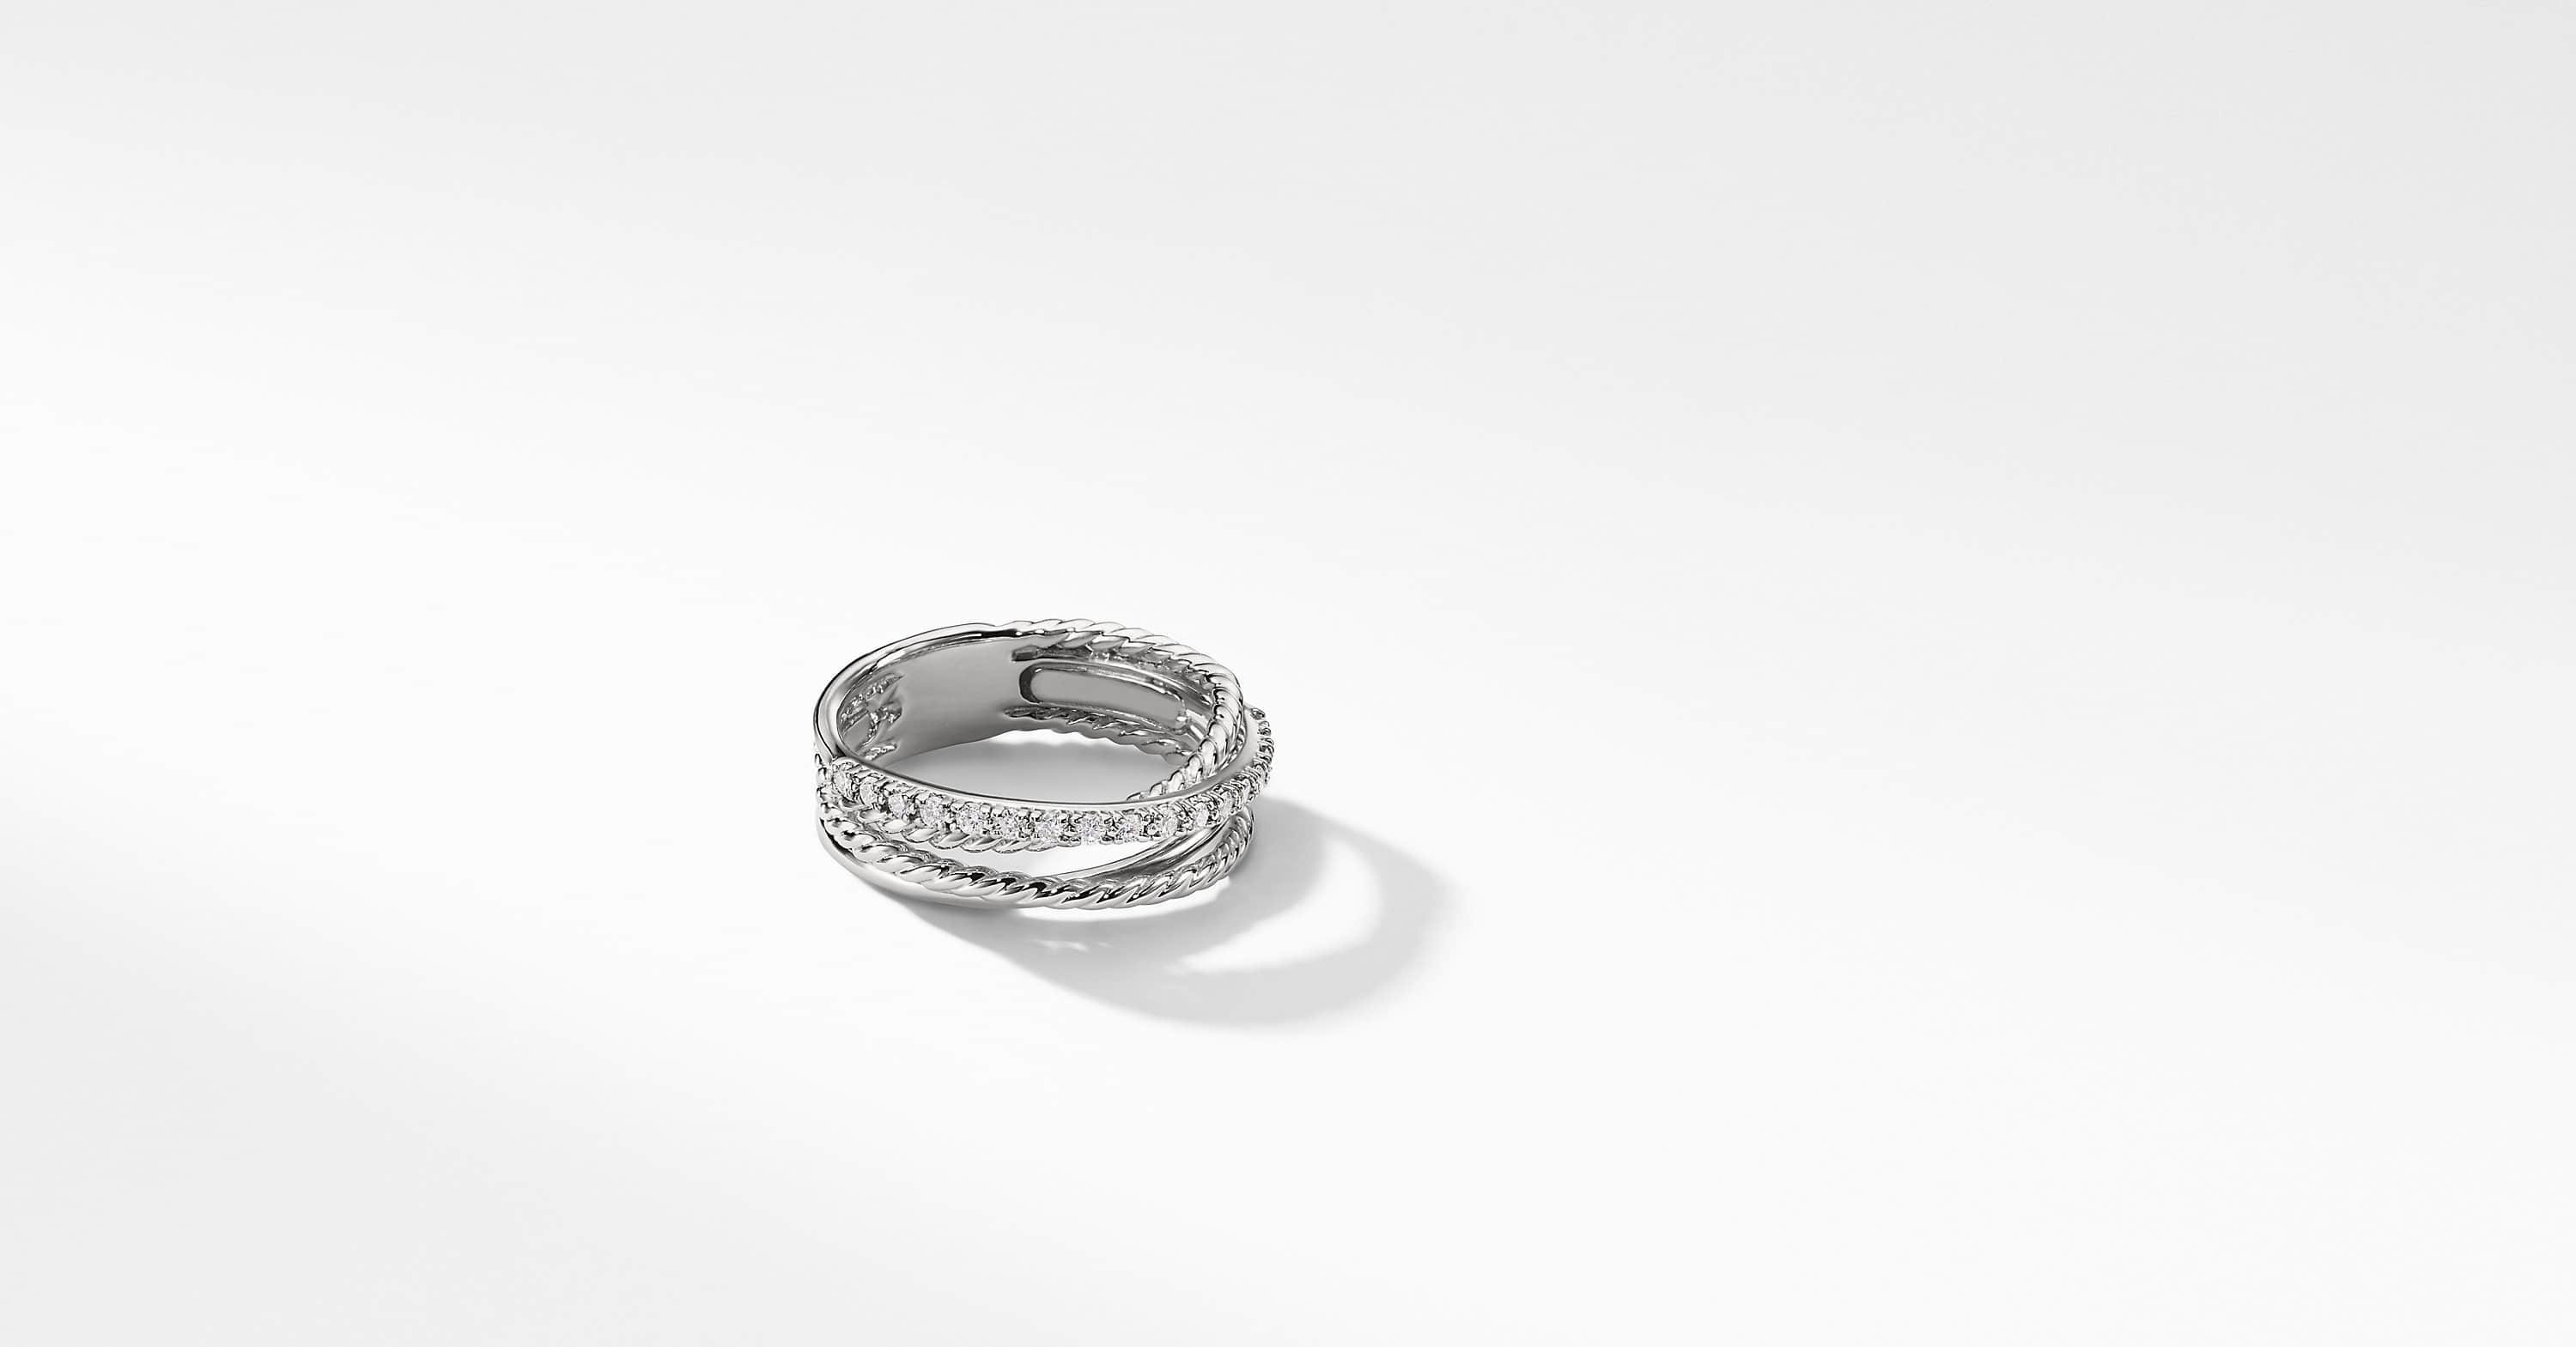 Bague avec diamants The Crossover Collection